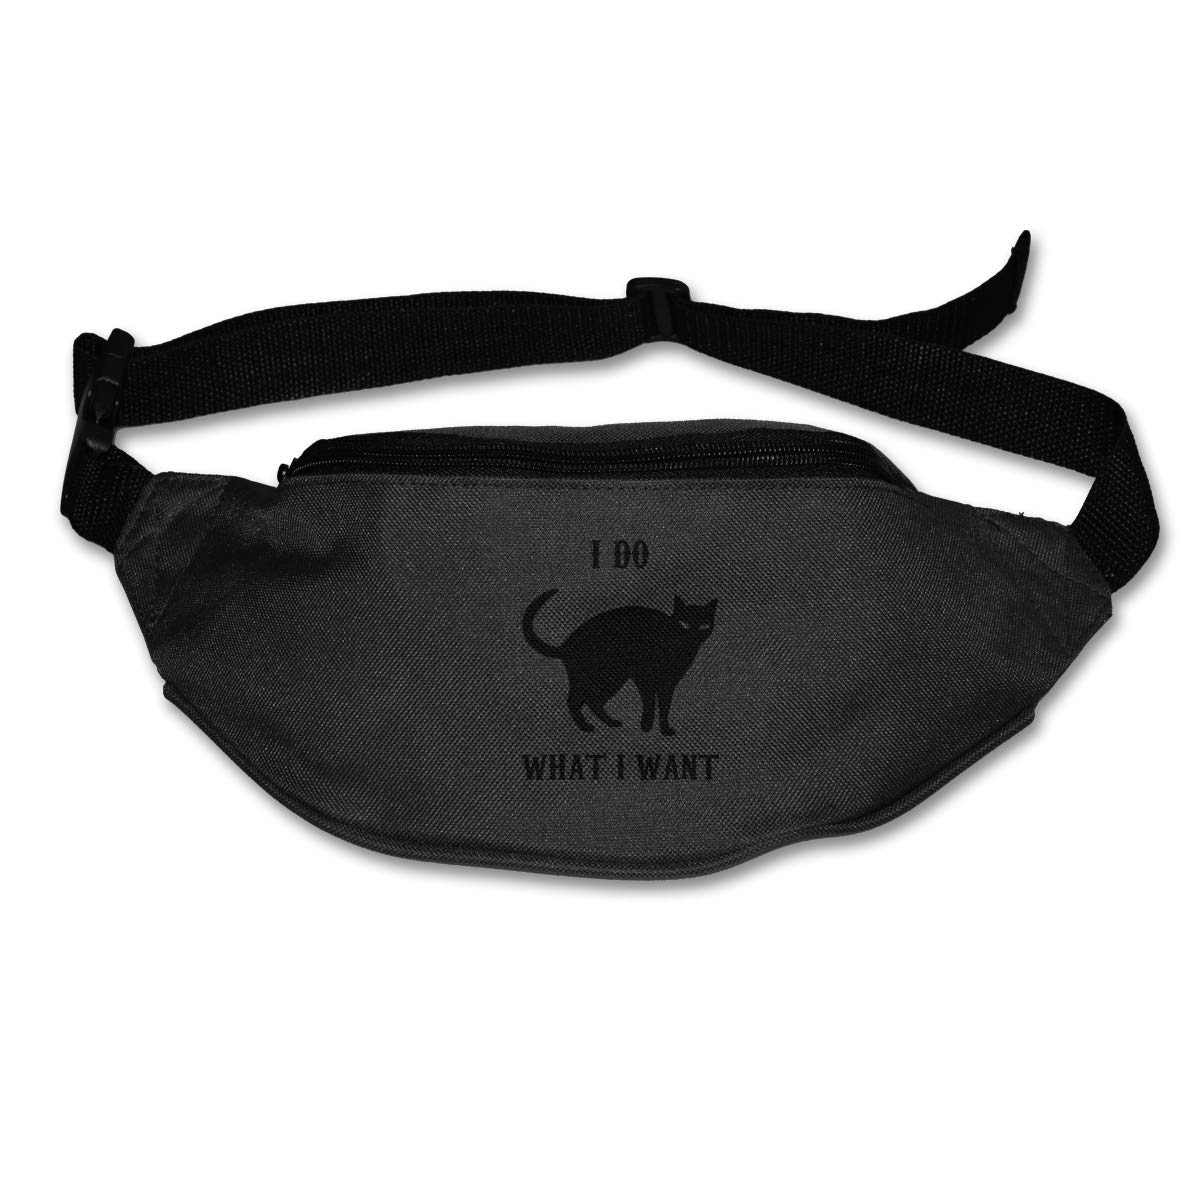 I Do What I Want Cat 1 Sport Waist Packs Fanny Pack Adjustable For Hike